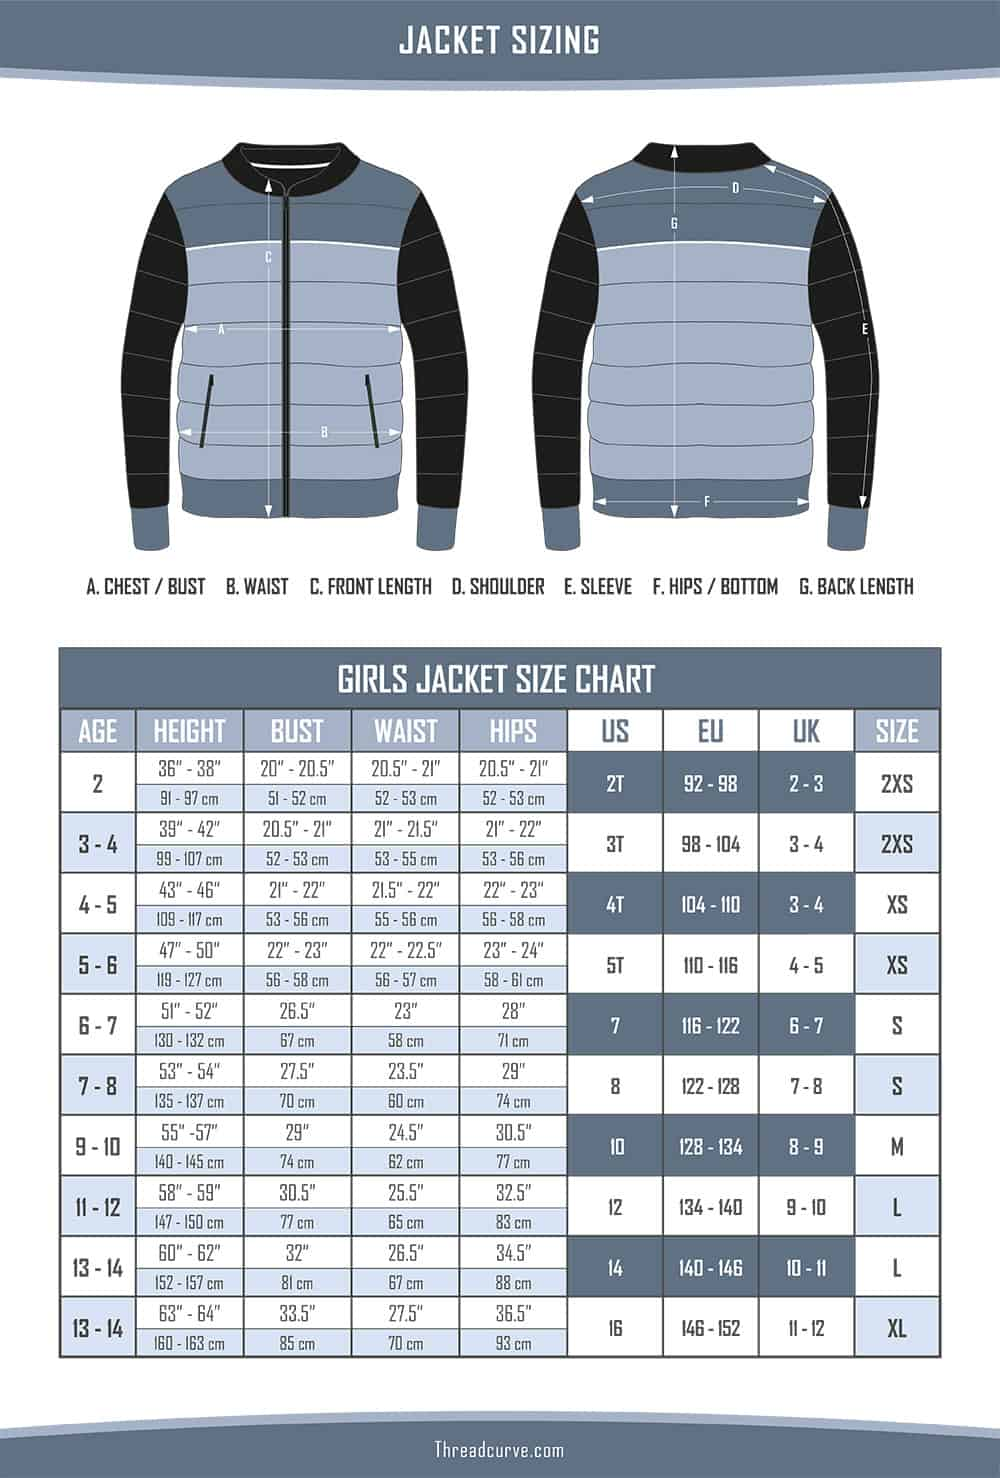 This is the chart for the Girls Jackets Sizes.